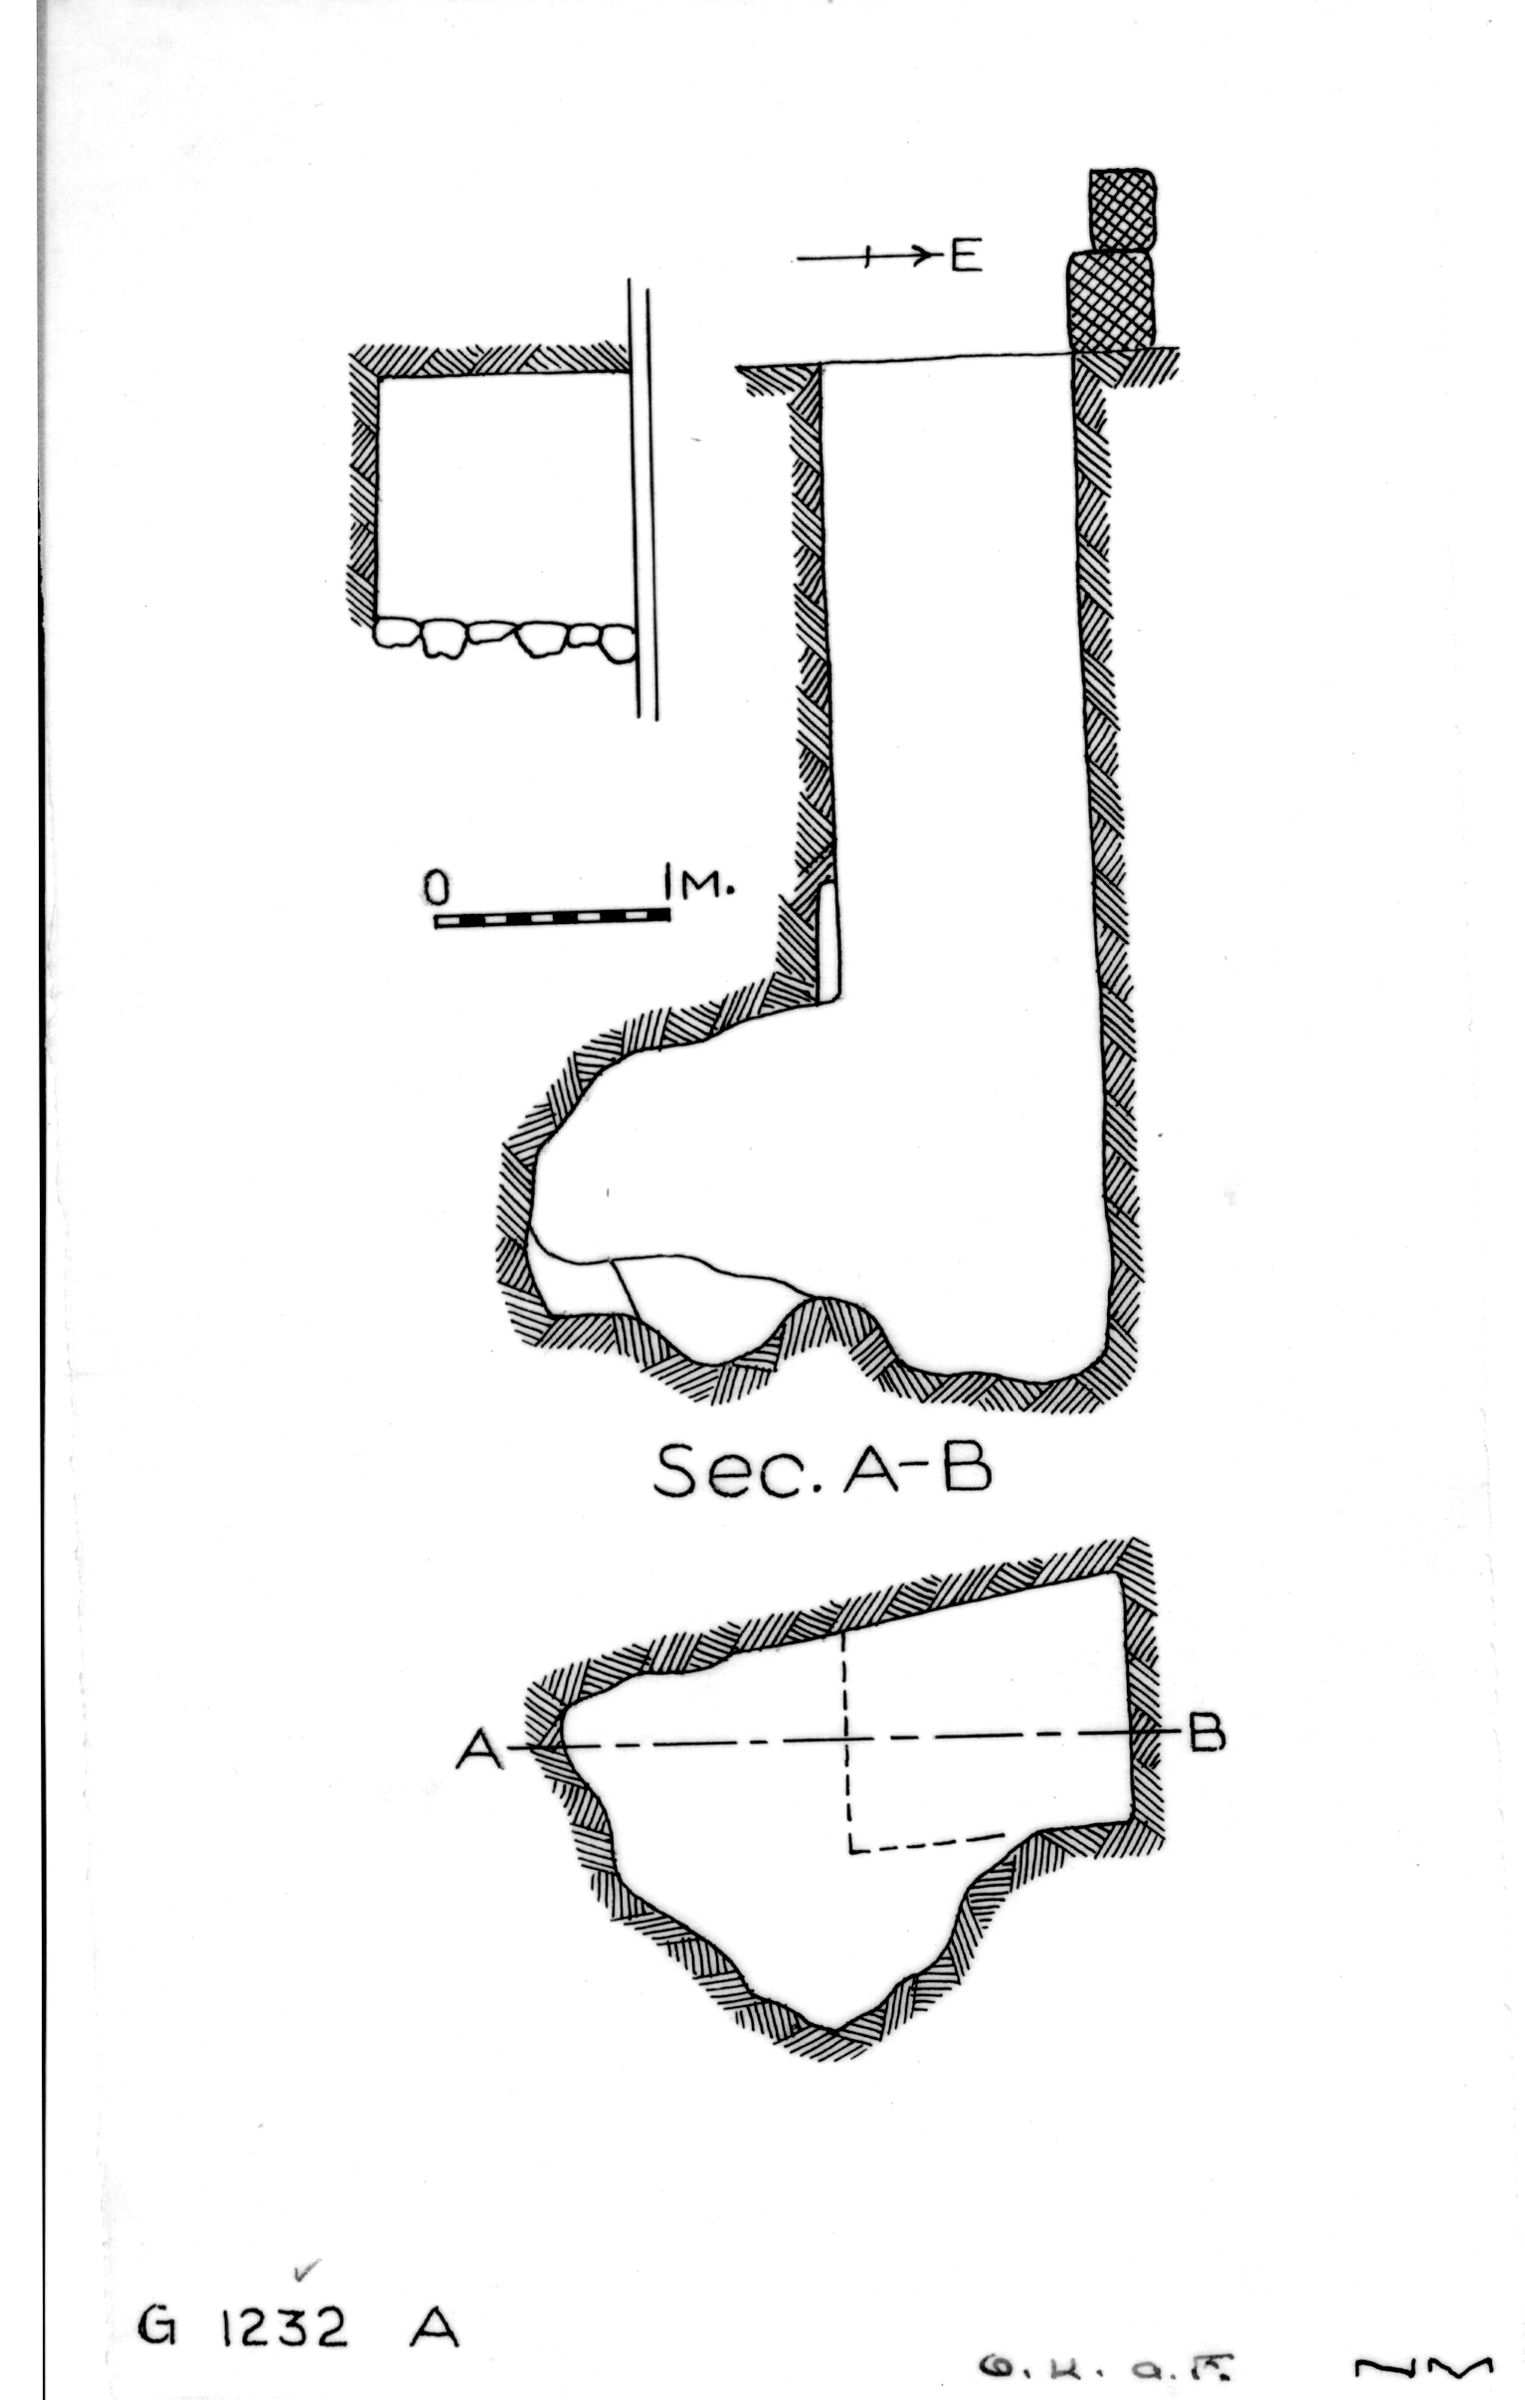 Maps and plans: G 1232, Shaft A